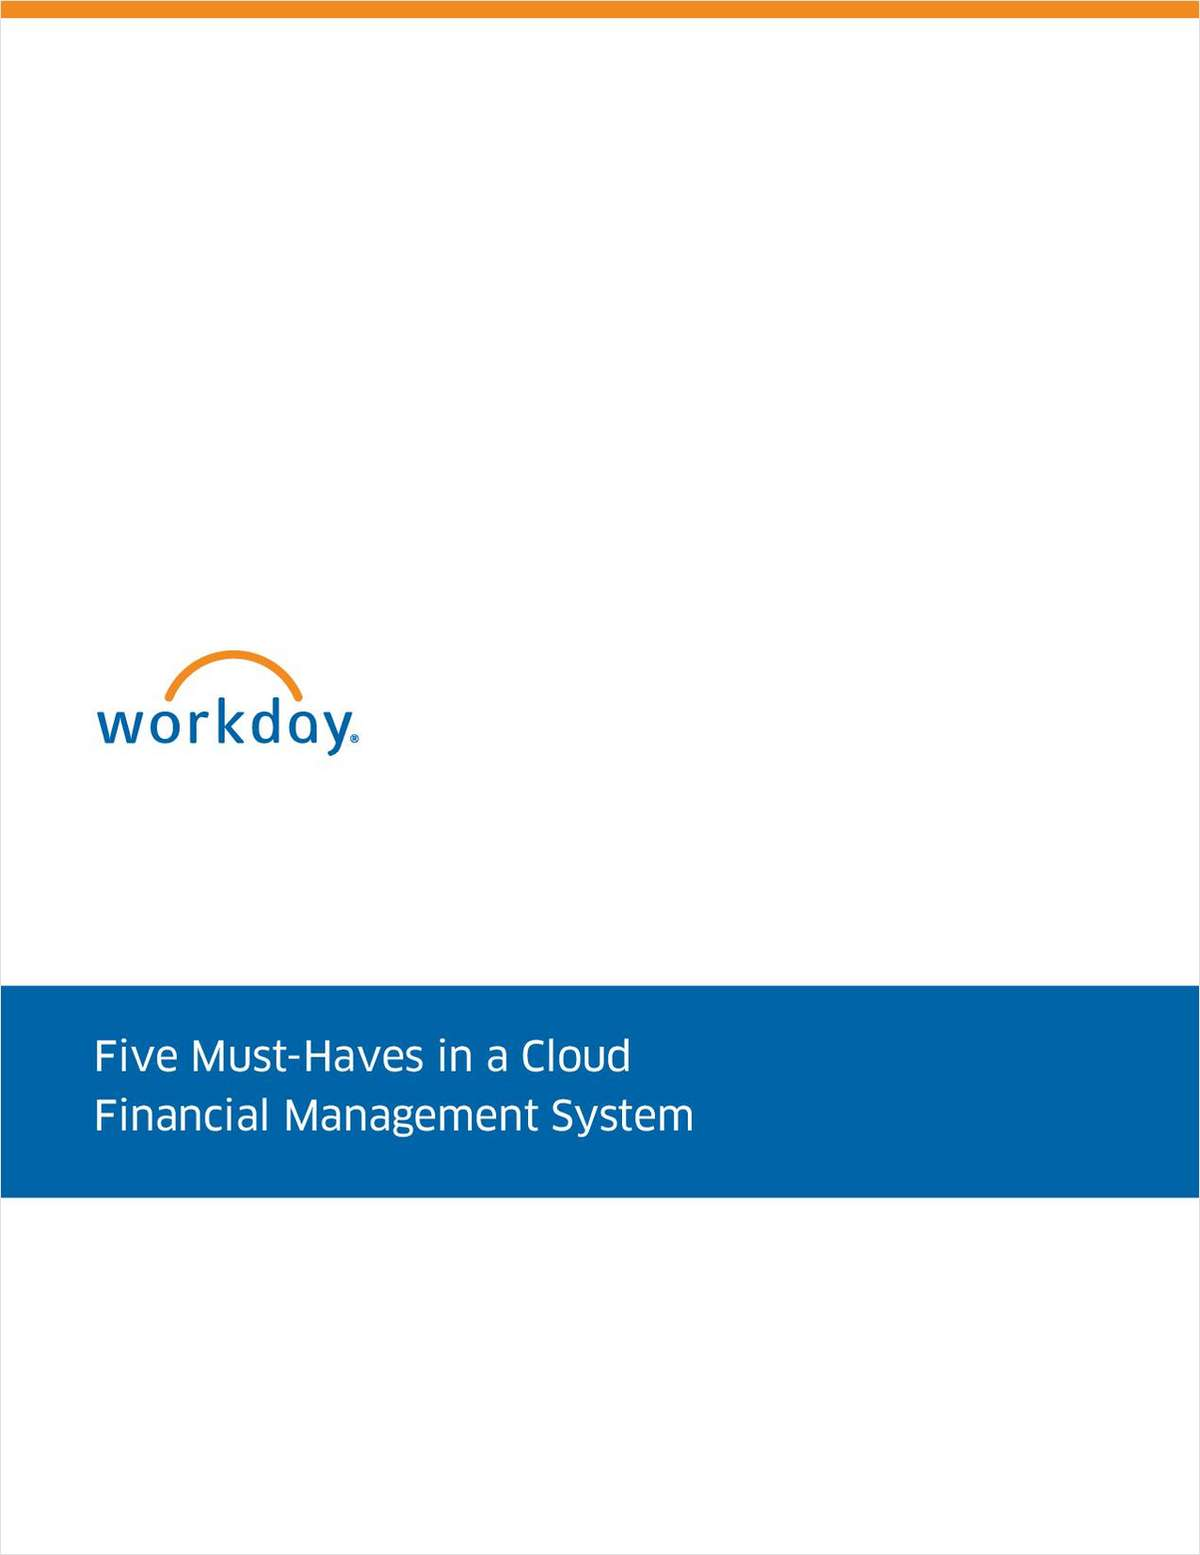 5 Must-Haves in a Cloud Financial Management System